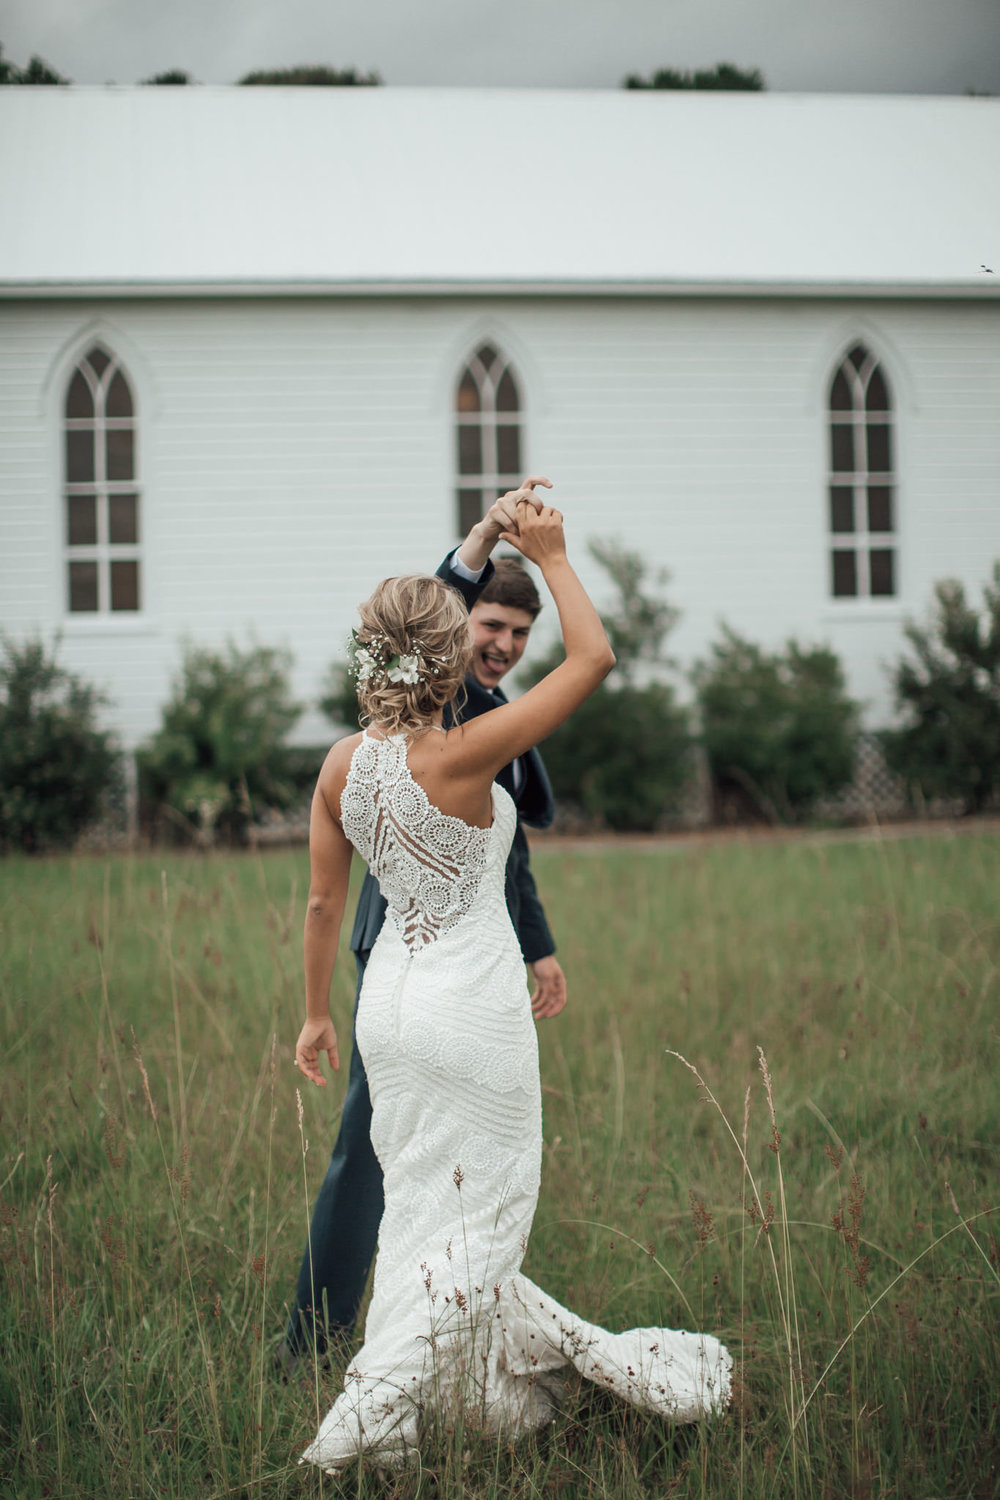 cassie-cook-photography-memphis-wedding-photographer-the-chapel-at-plein-air-sneed-wedding-26.jpg